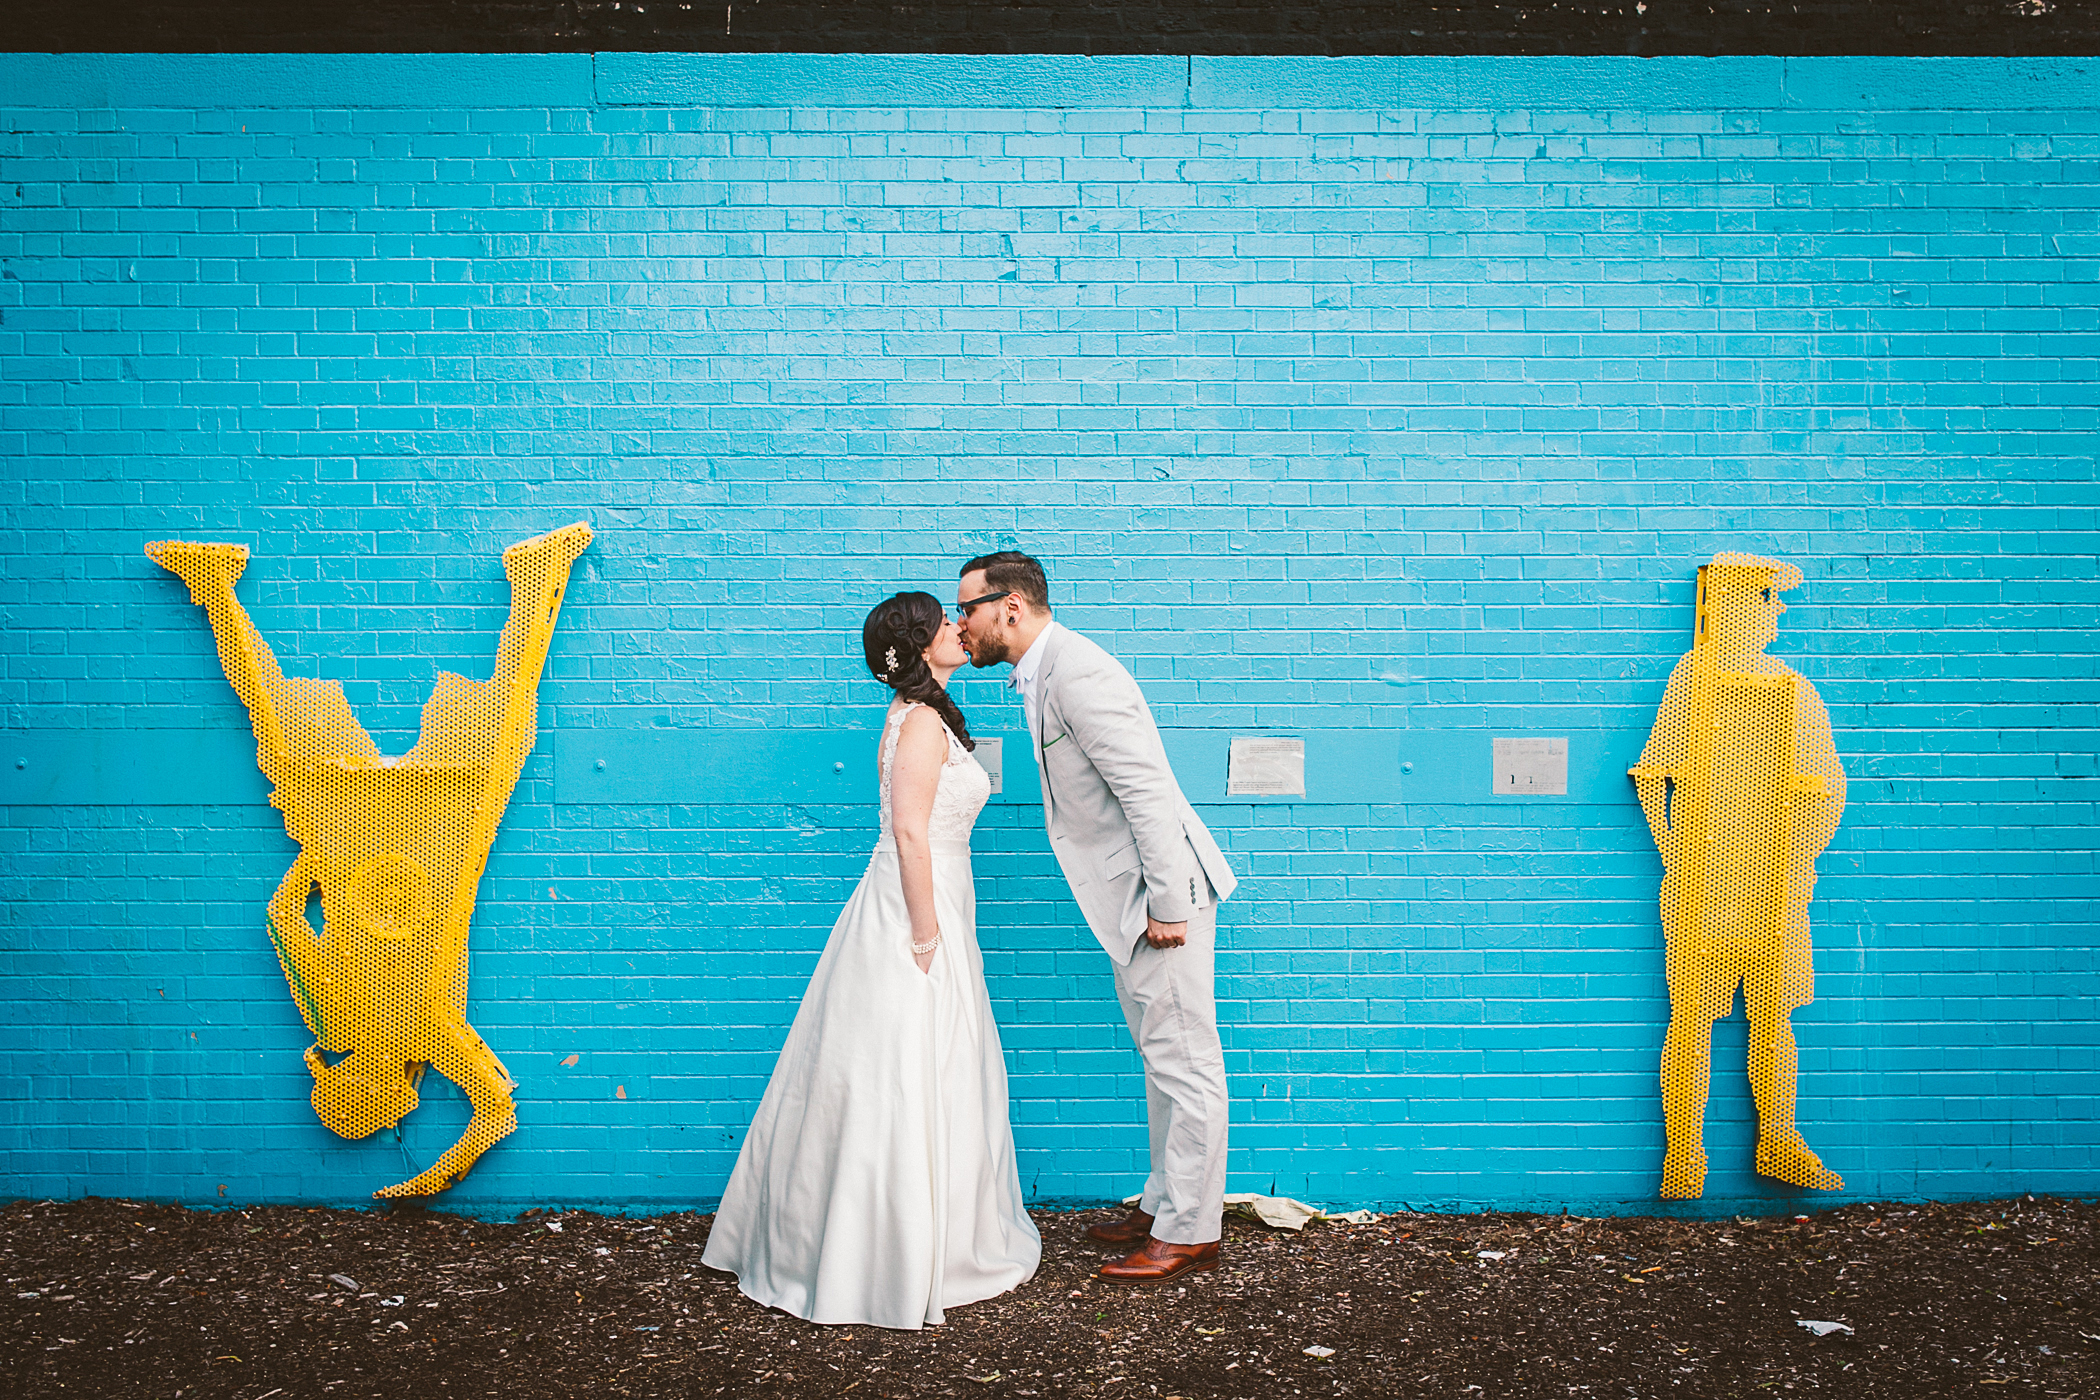 Oriana Koren Weddings kiss in front of wall with mounted sculptures